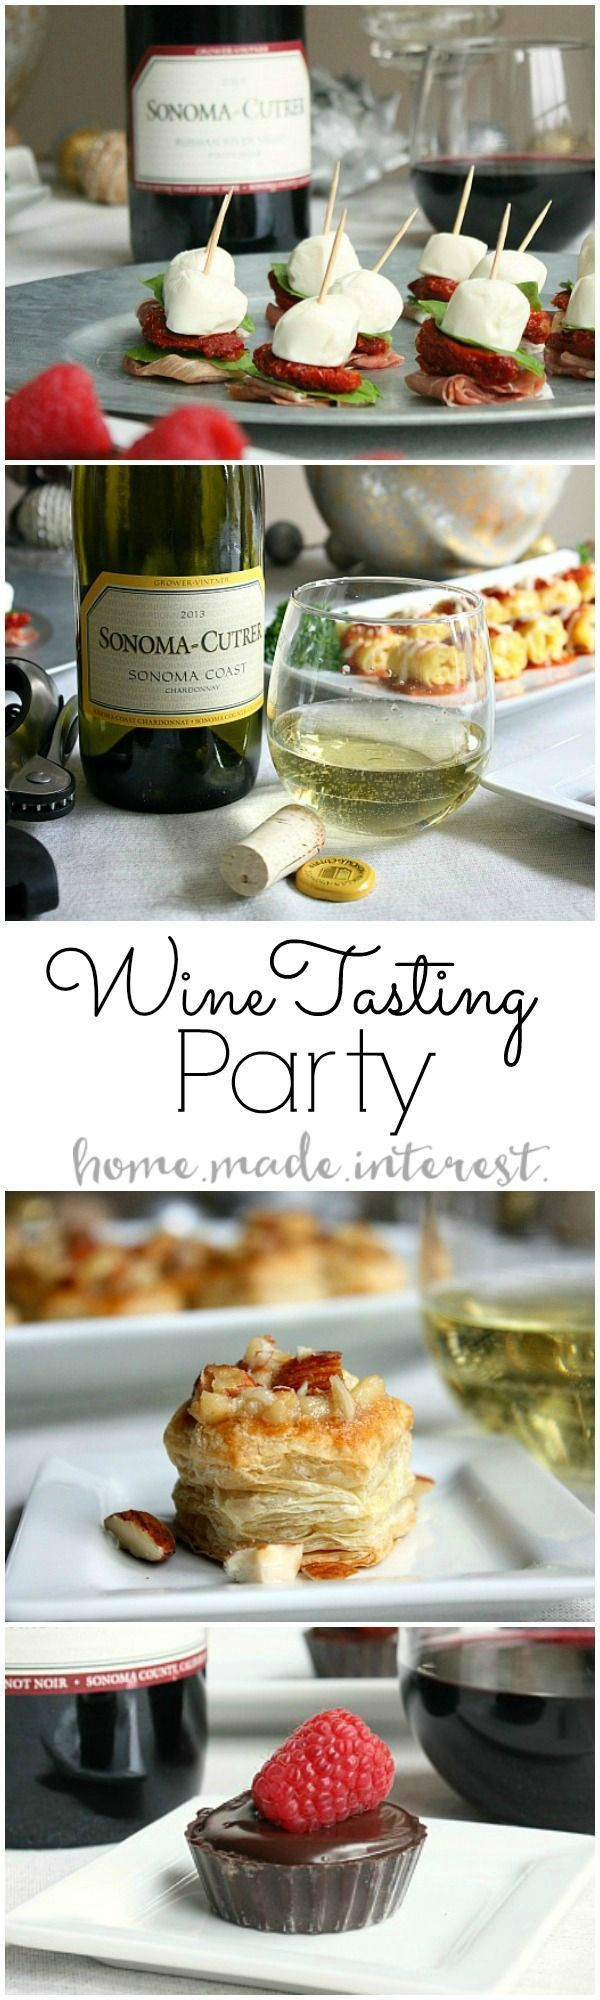 Our Wine Tasting Party was all about trying new foods and tasting new wines. We had so much fun coming up with new recipes to pair with Sonoma Cutrer wines and our guests left happy! AD